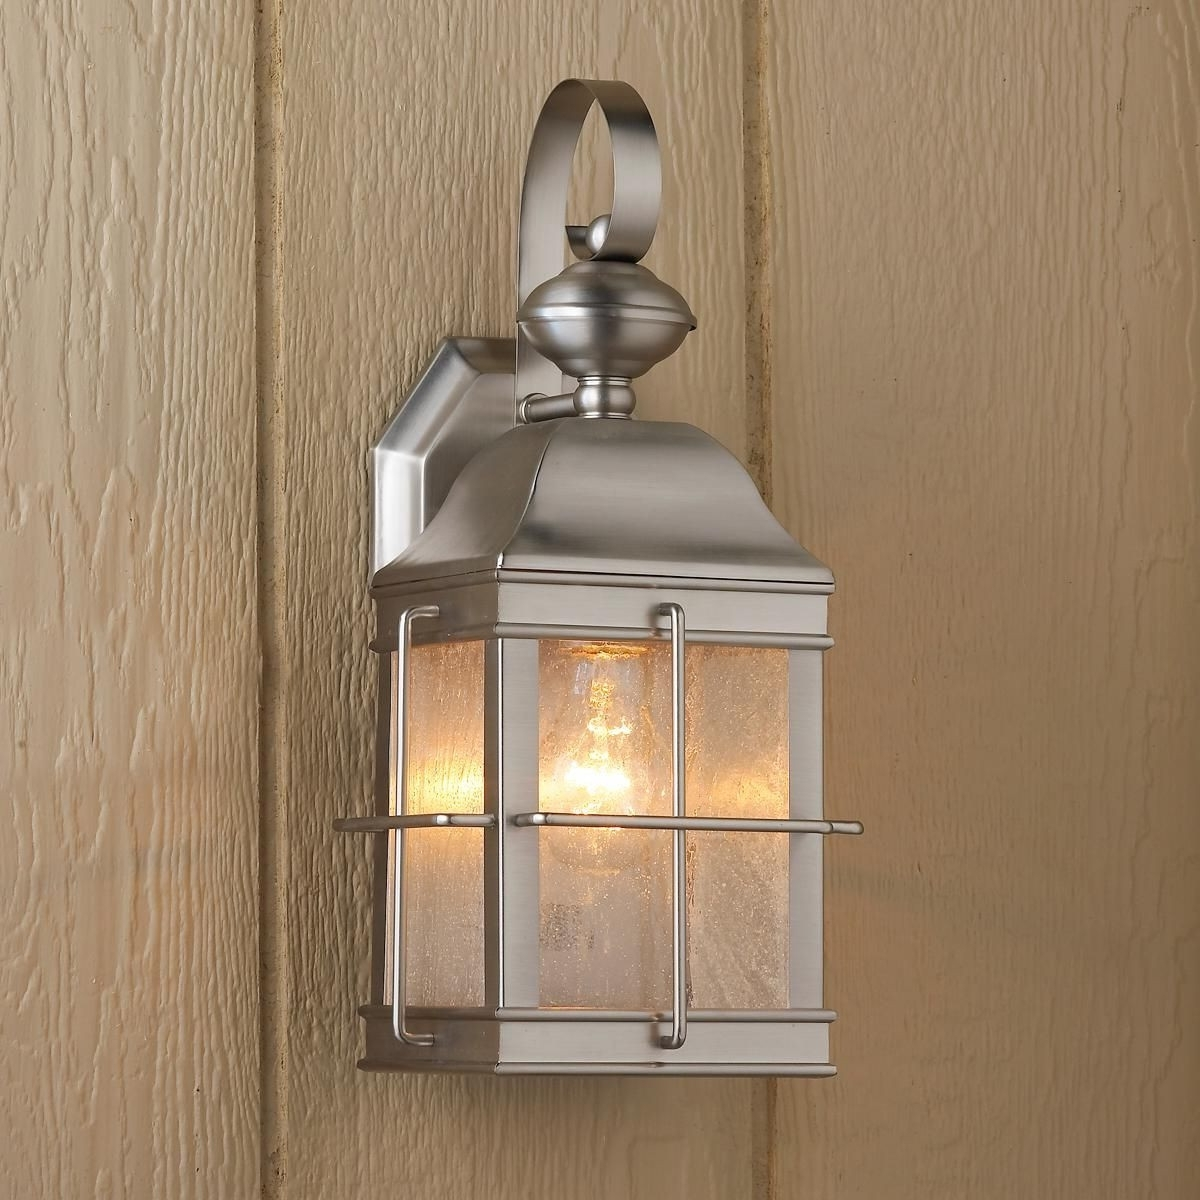 Elegant Outdoor Lanterns Within Most Up To Date Brushed Nickel Outdoor Lights Elegant Nautical Inspired Lantern Wall (Gallery 11 of 20)